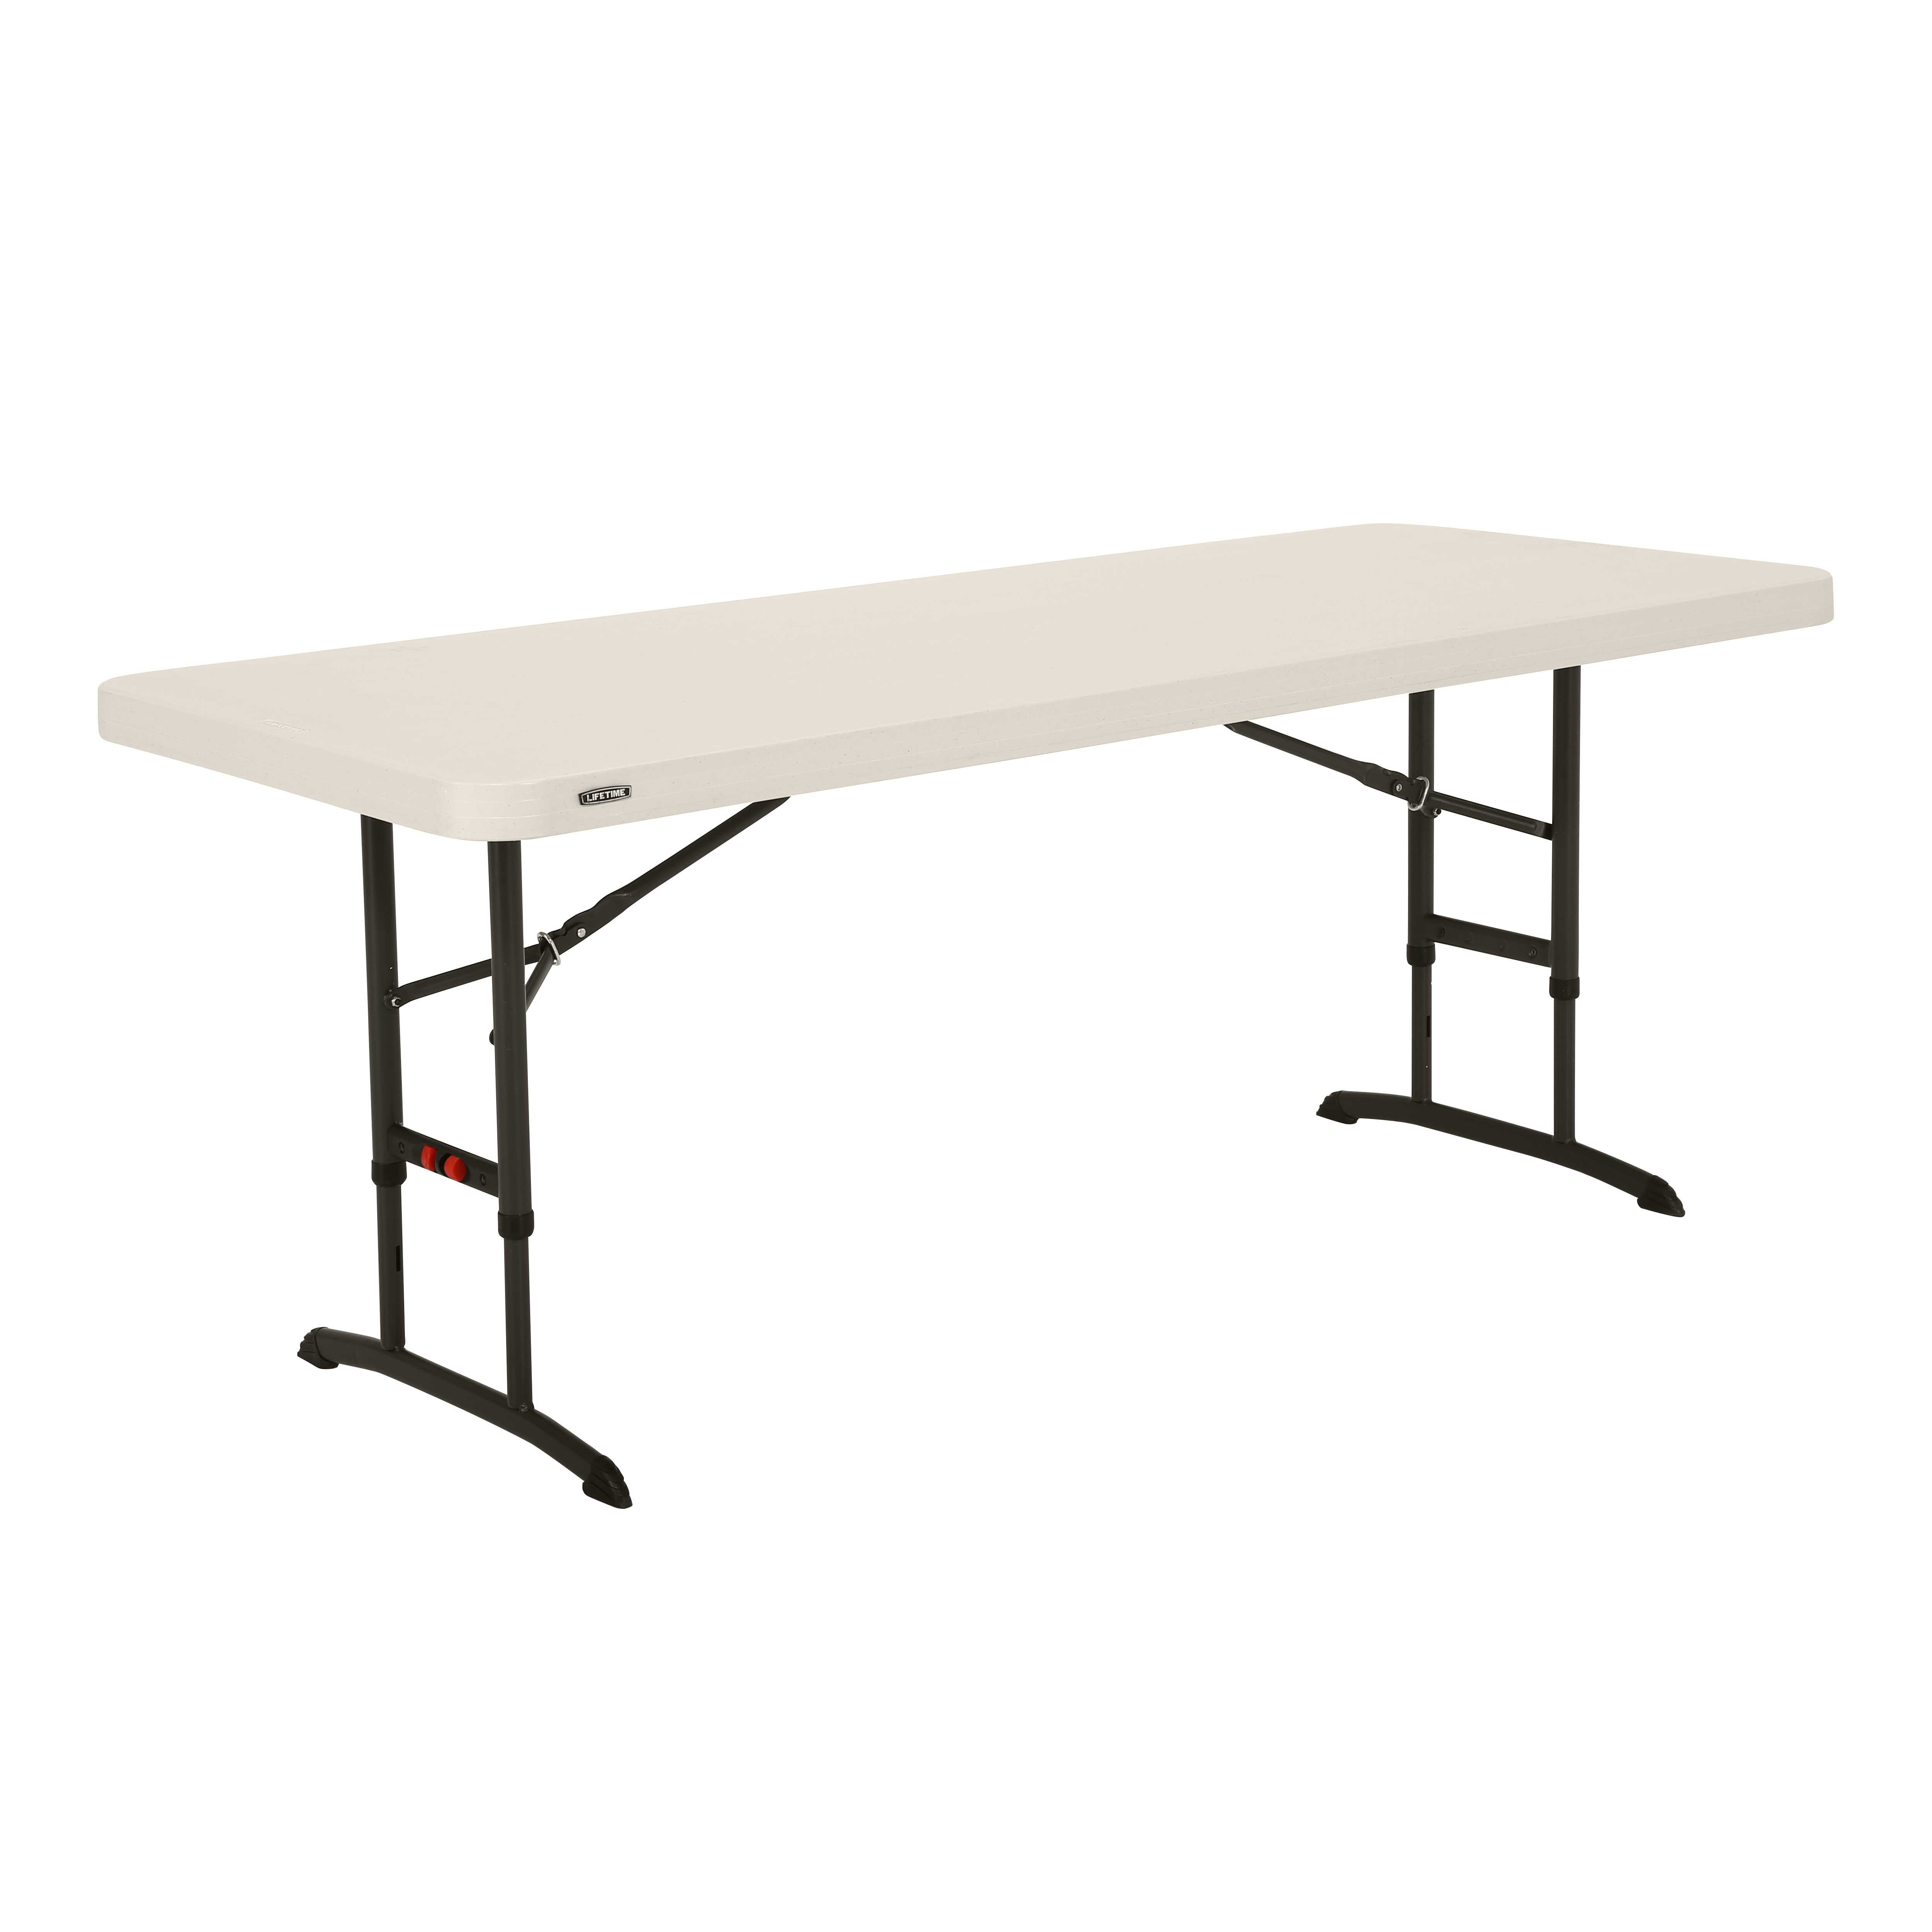 Lifetime 6-Foot Adjustable Height Table in Almond (Commercial), 80565